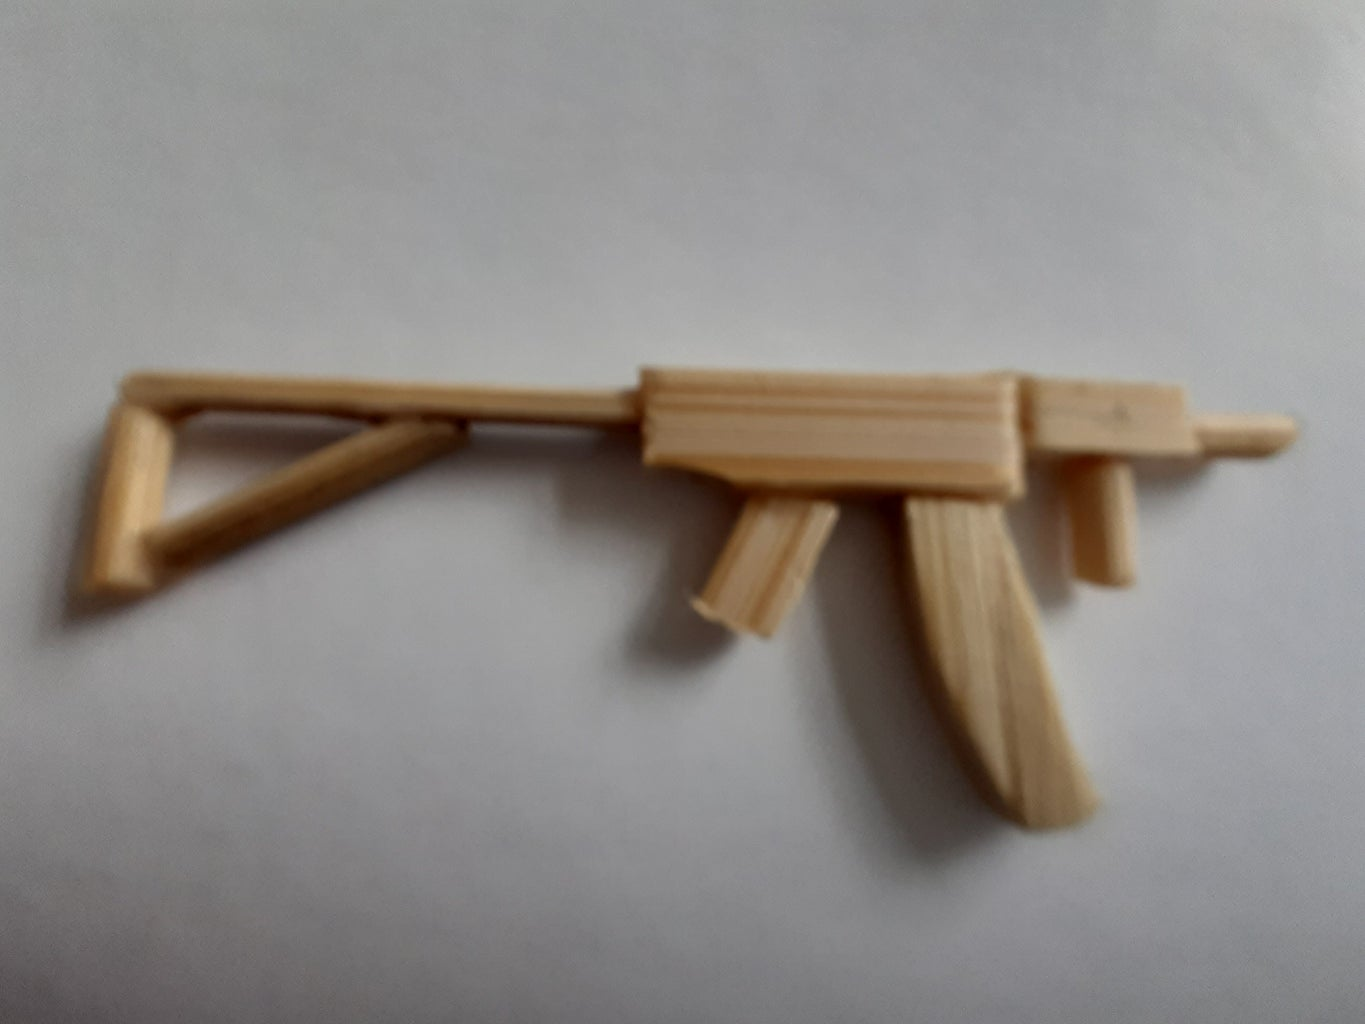 How to Make the Wooden Pieces: